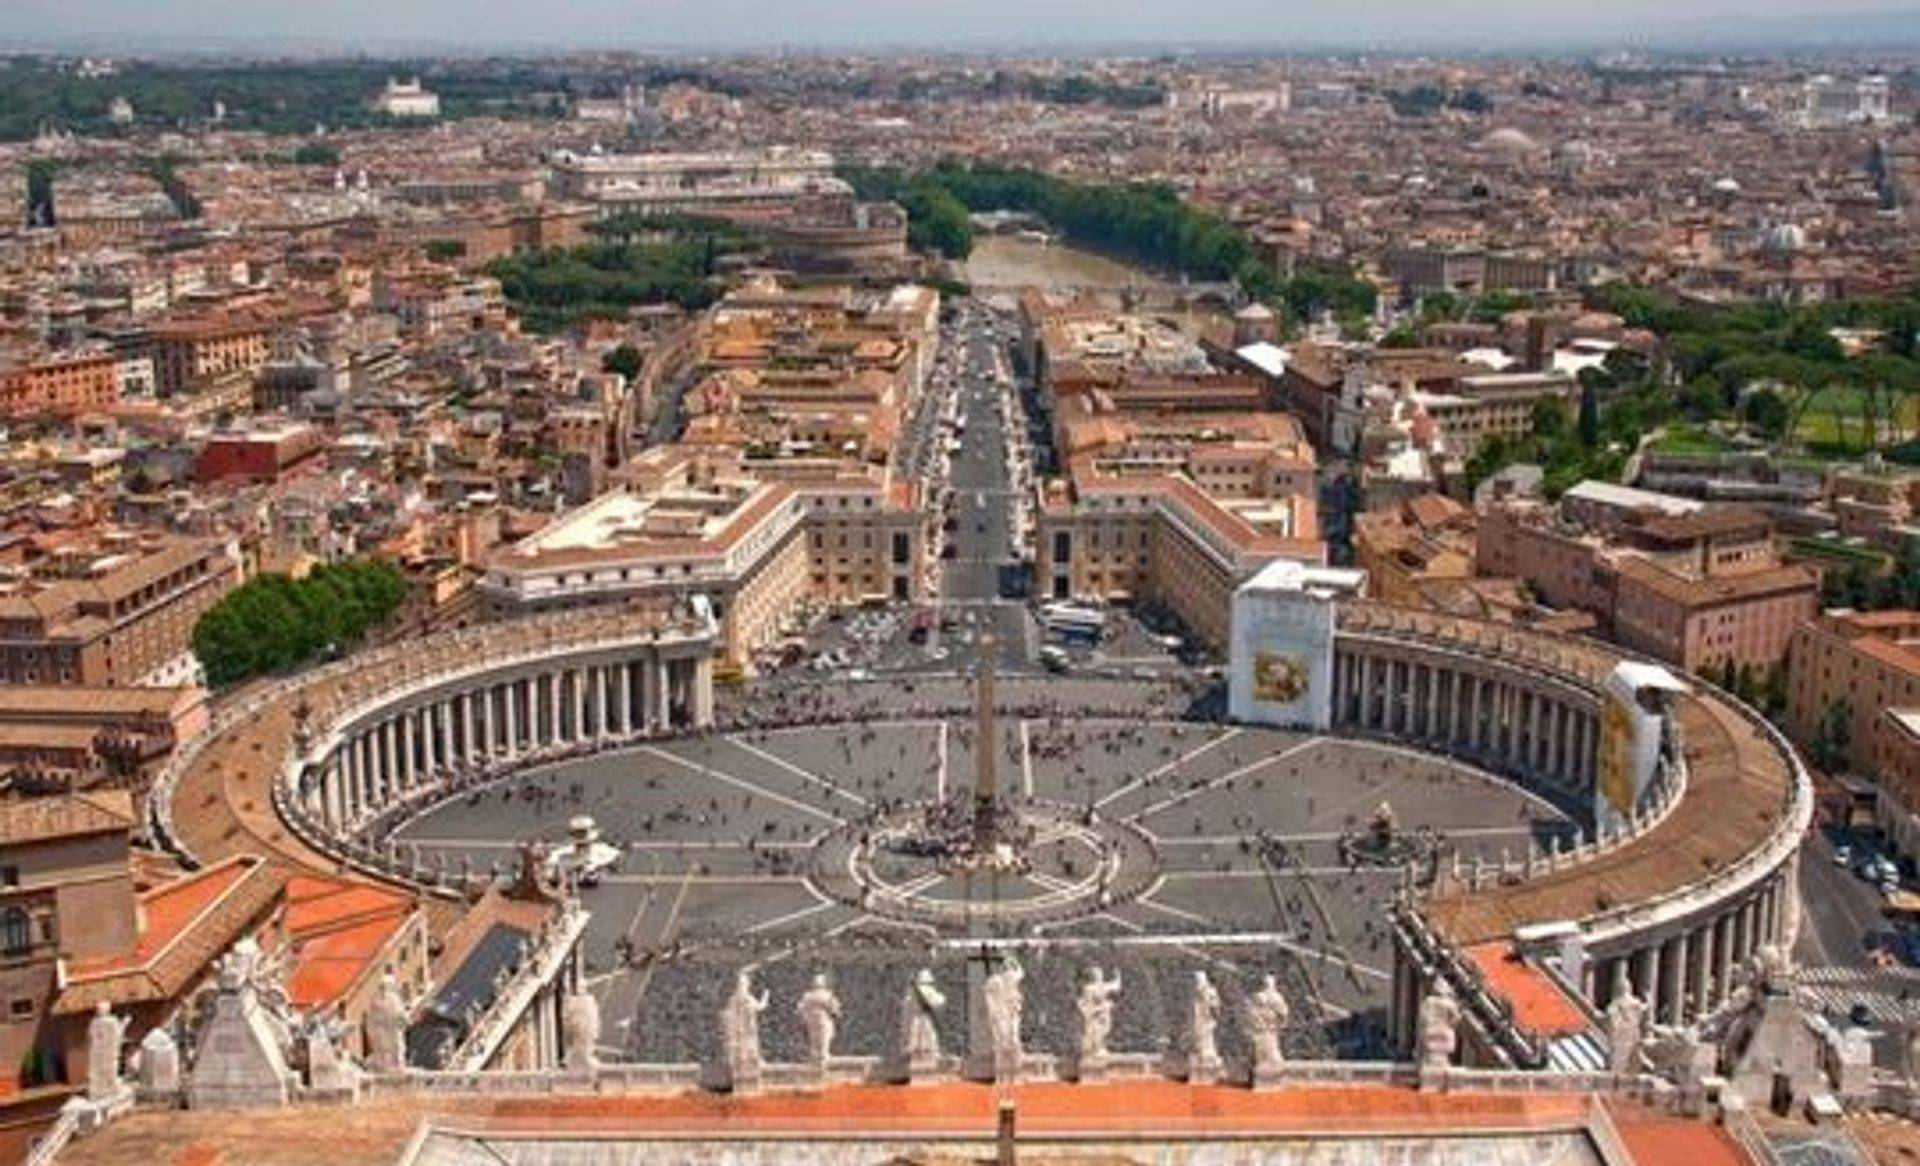 Cris Roman Guide - Cristina Giannicchi - View from the top of St. Peter Dome